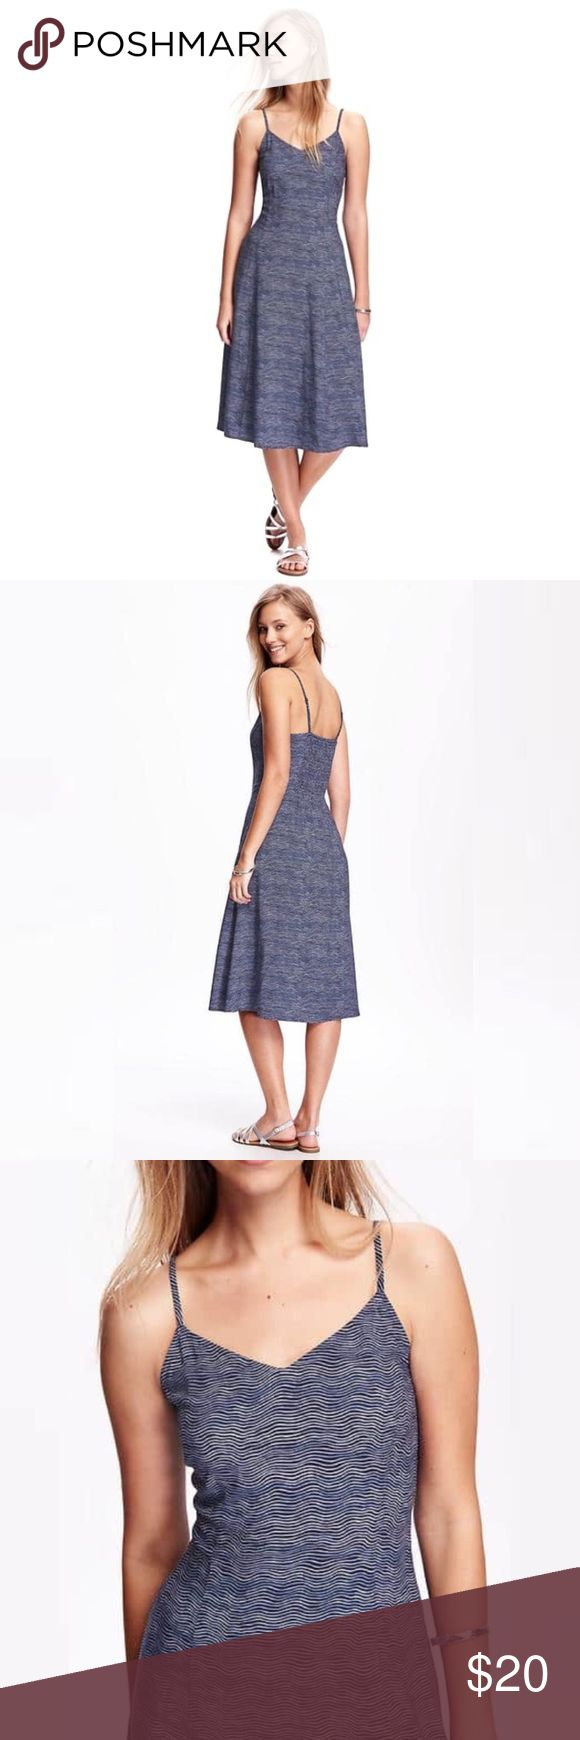 Old Navy Cami Dress in Blue Wave Stripe Sweetheart neckline; adjustable spaghetti straps. Elasticized back; hidden side zipper. All over print. Soft, lightweight woven rayon. Slightly fitted through body. Dress hits below knee. Old Navy Dresses Midi